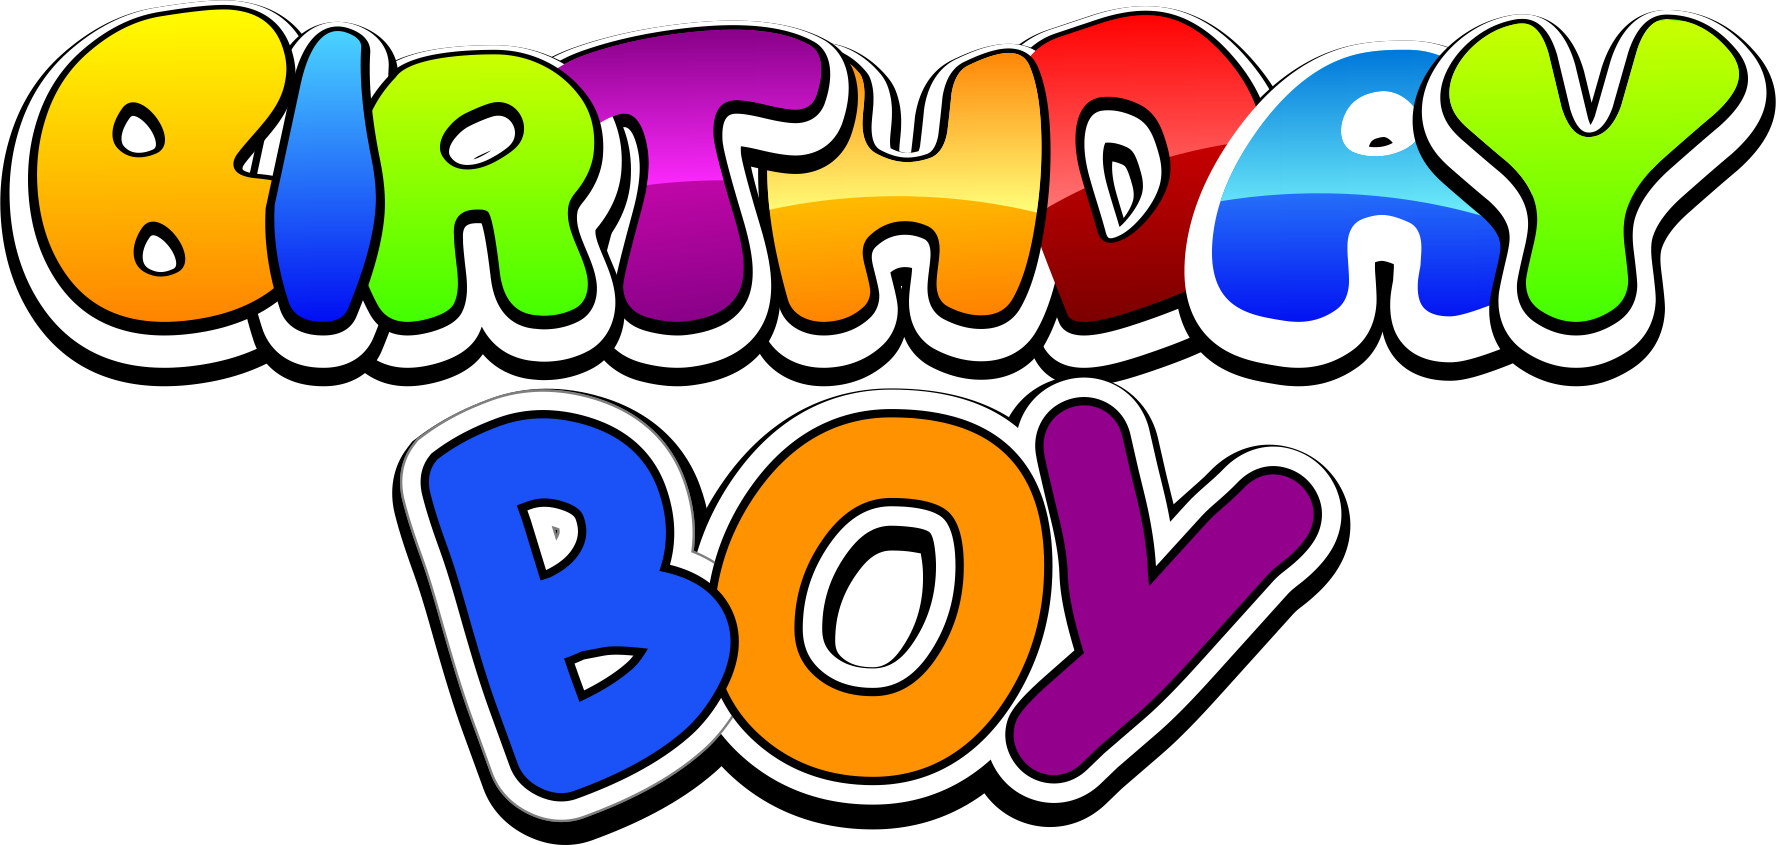 Boy birthday png. Pictures collection download wallpaper